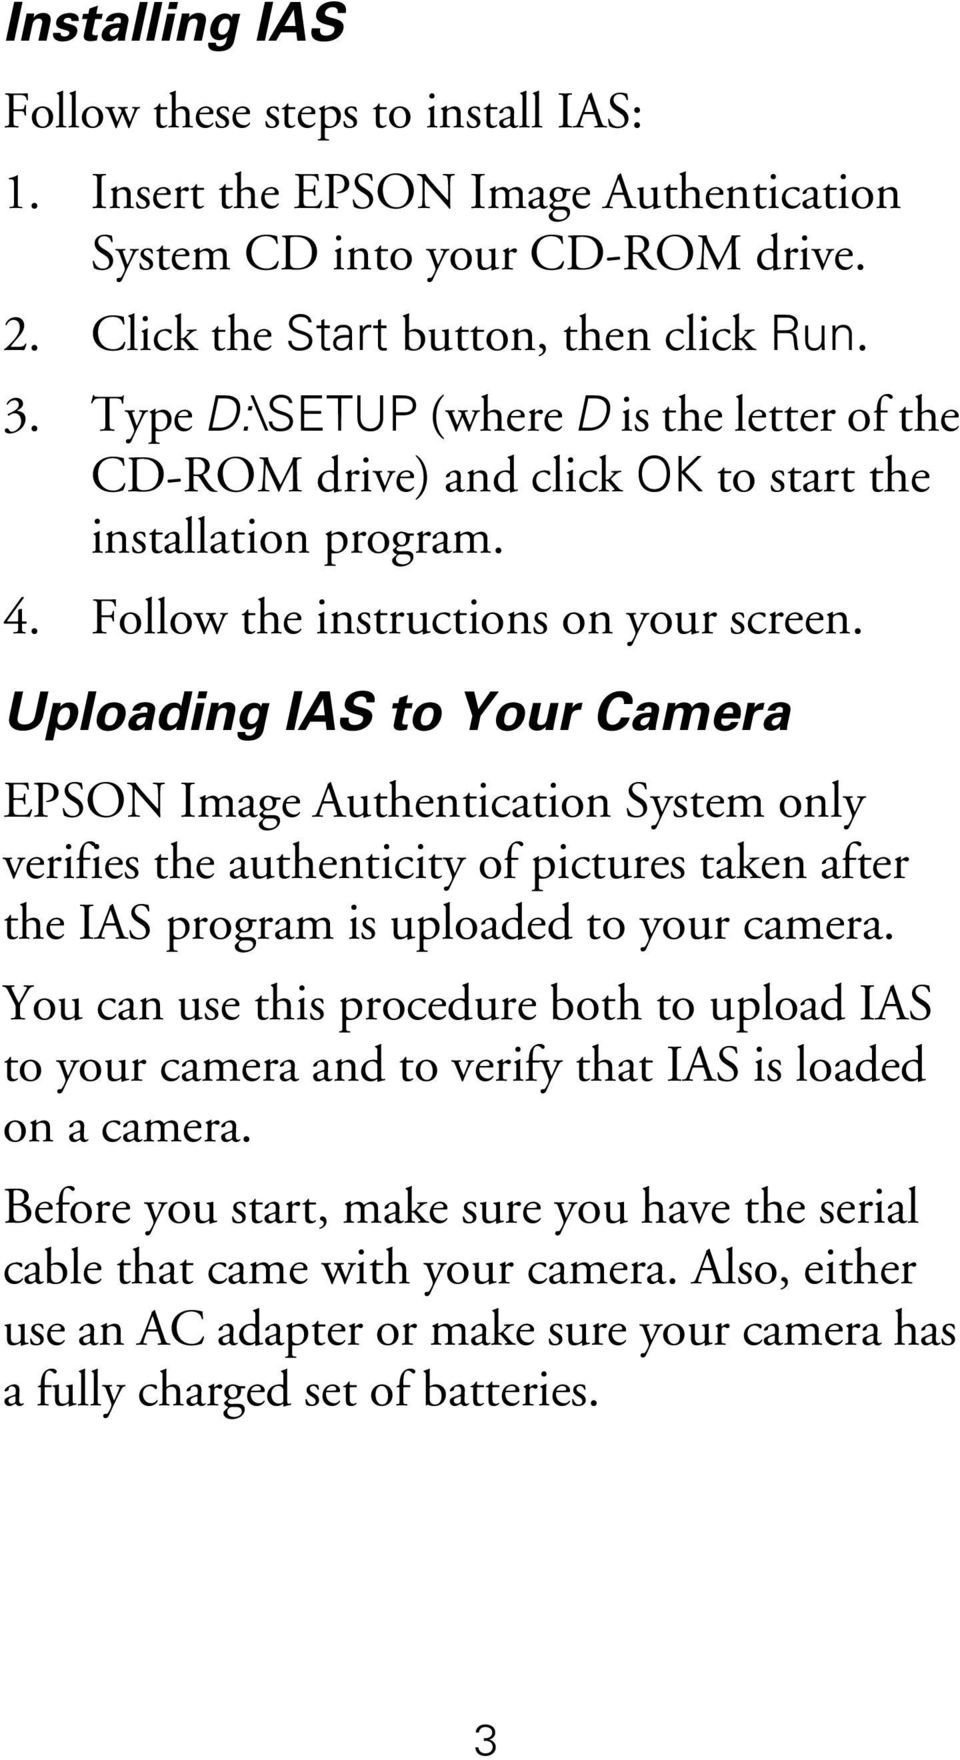 Uploading IAS to Your Camera EPSON Image Authentication System only verifies the authenticity of pictures taken after the IAS program is uploaded to your camera.